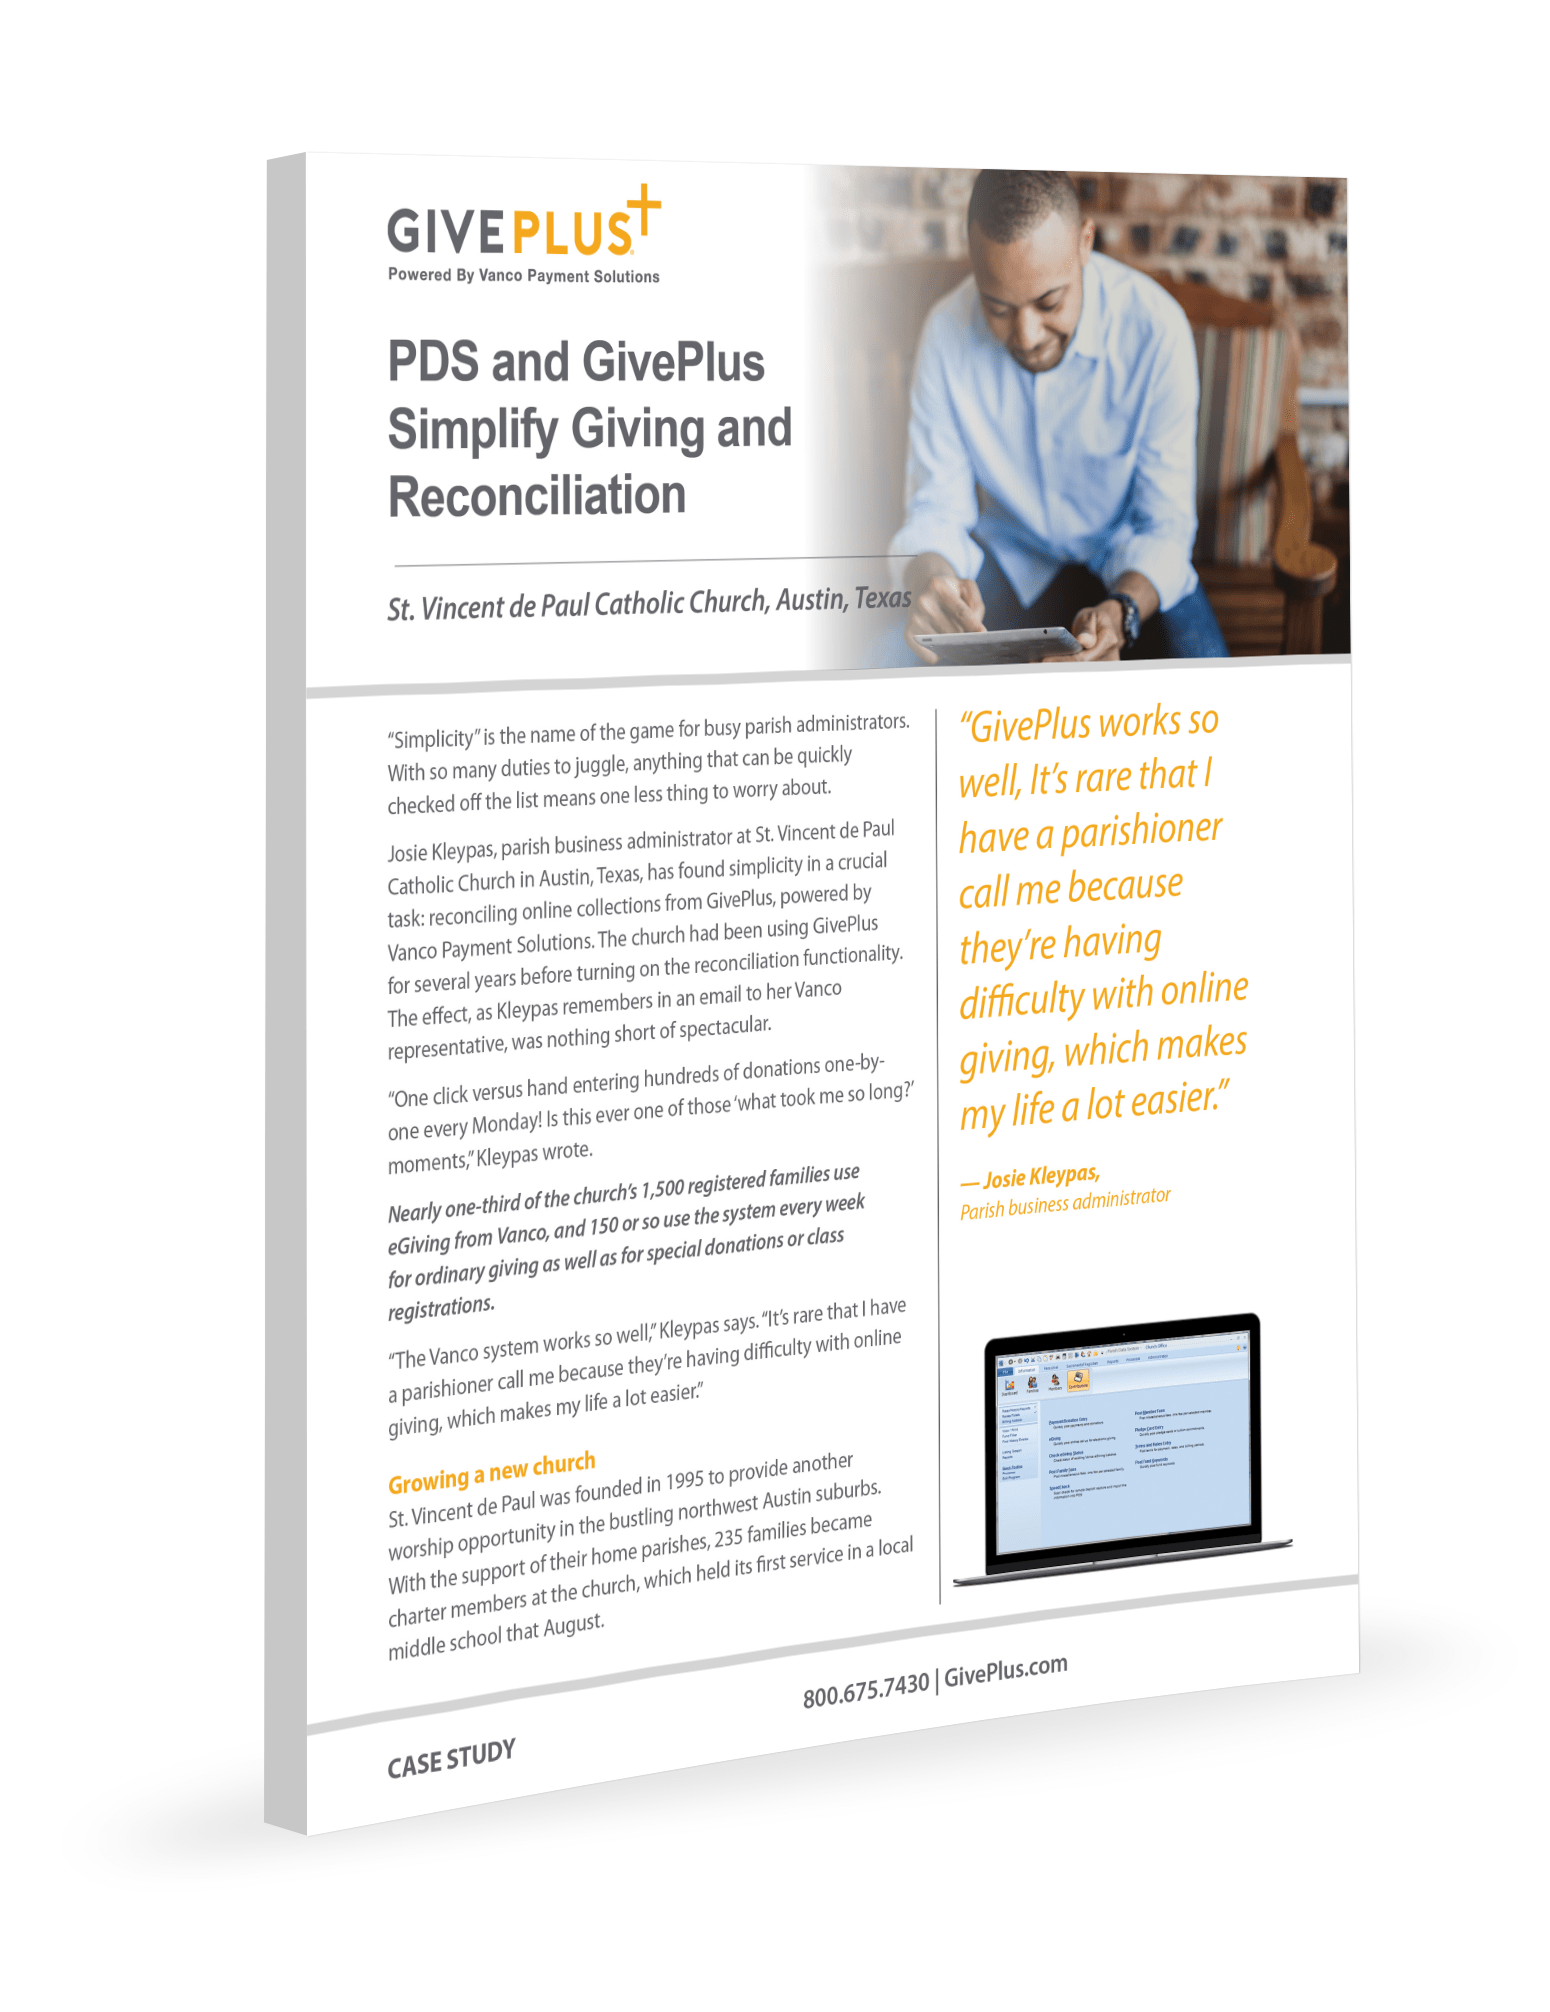 PDS and GivePlus Simplify Giving and Reconciliation